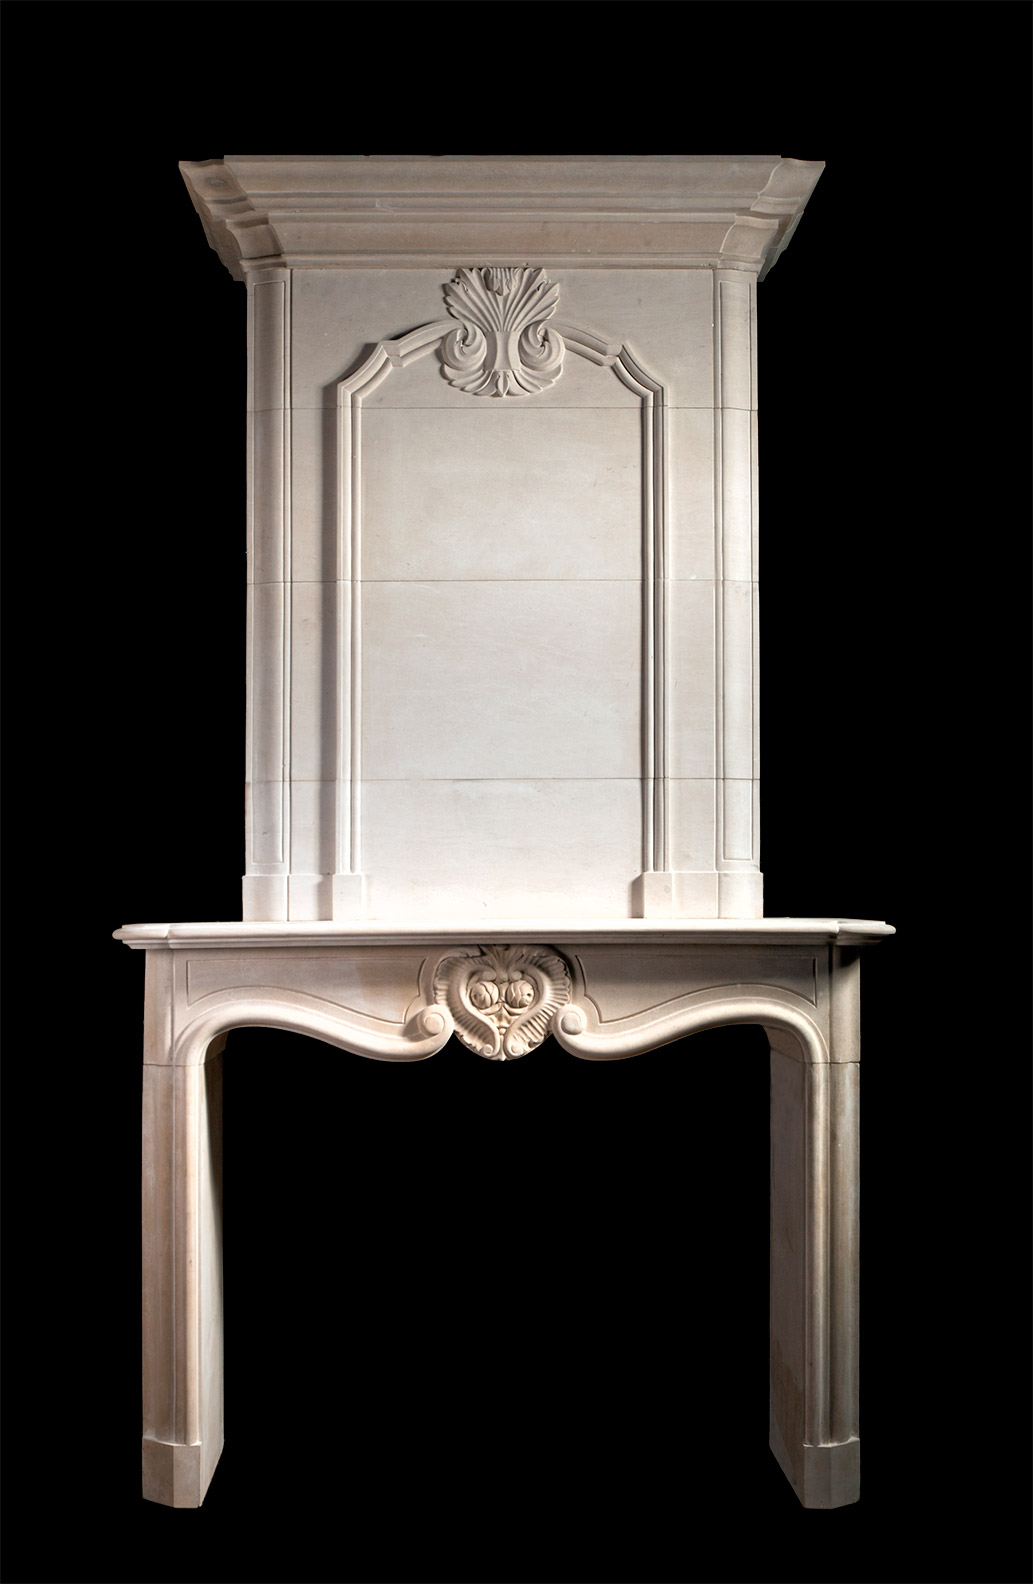 Paris – French Fireplace